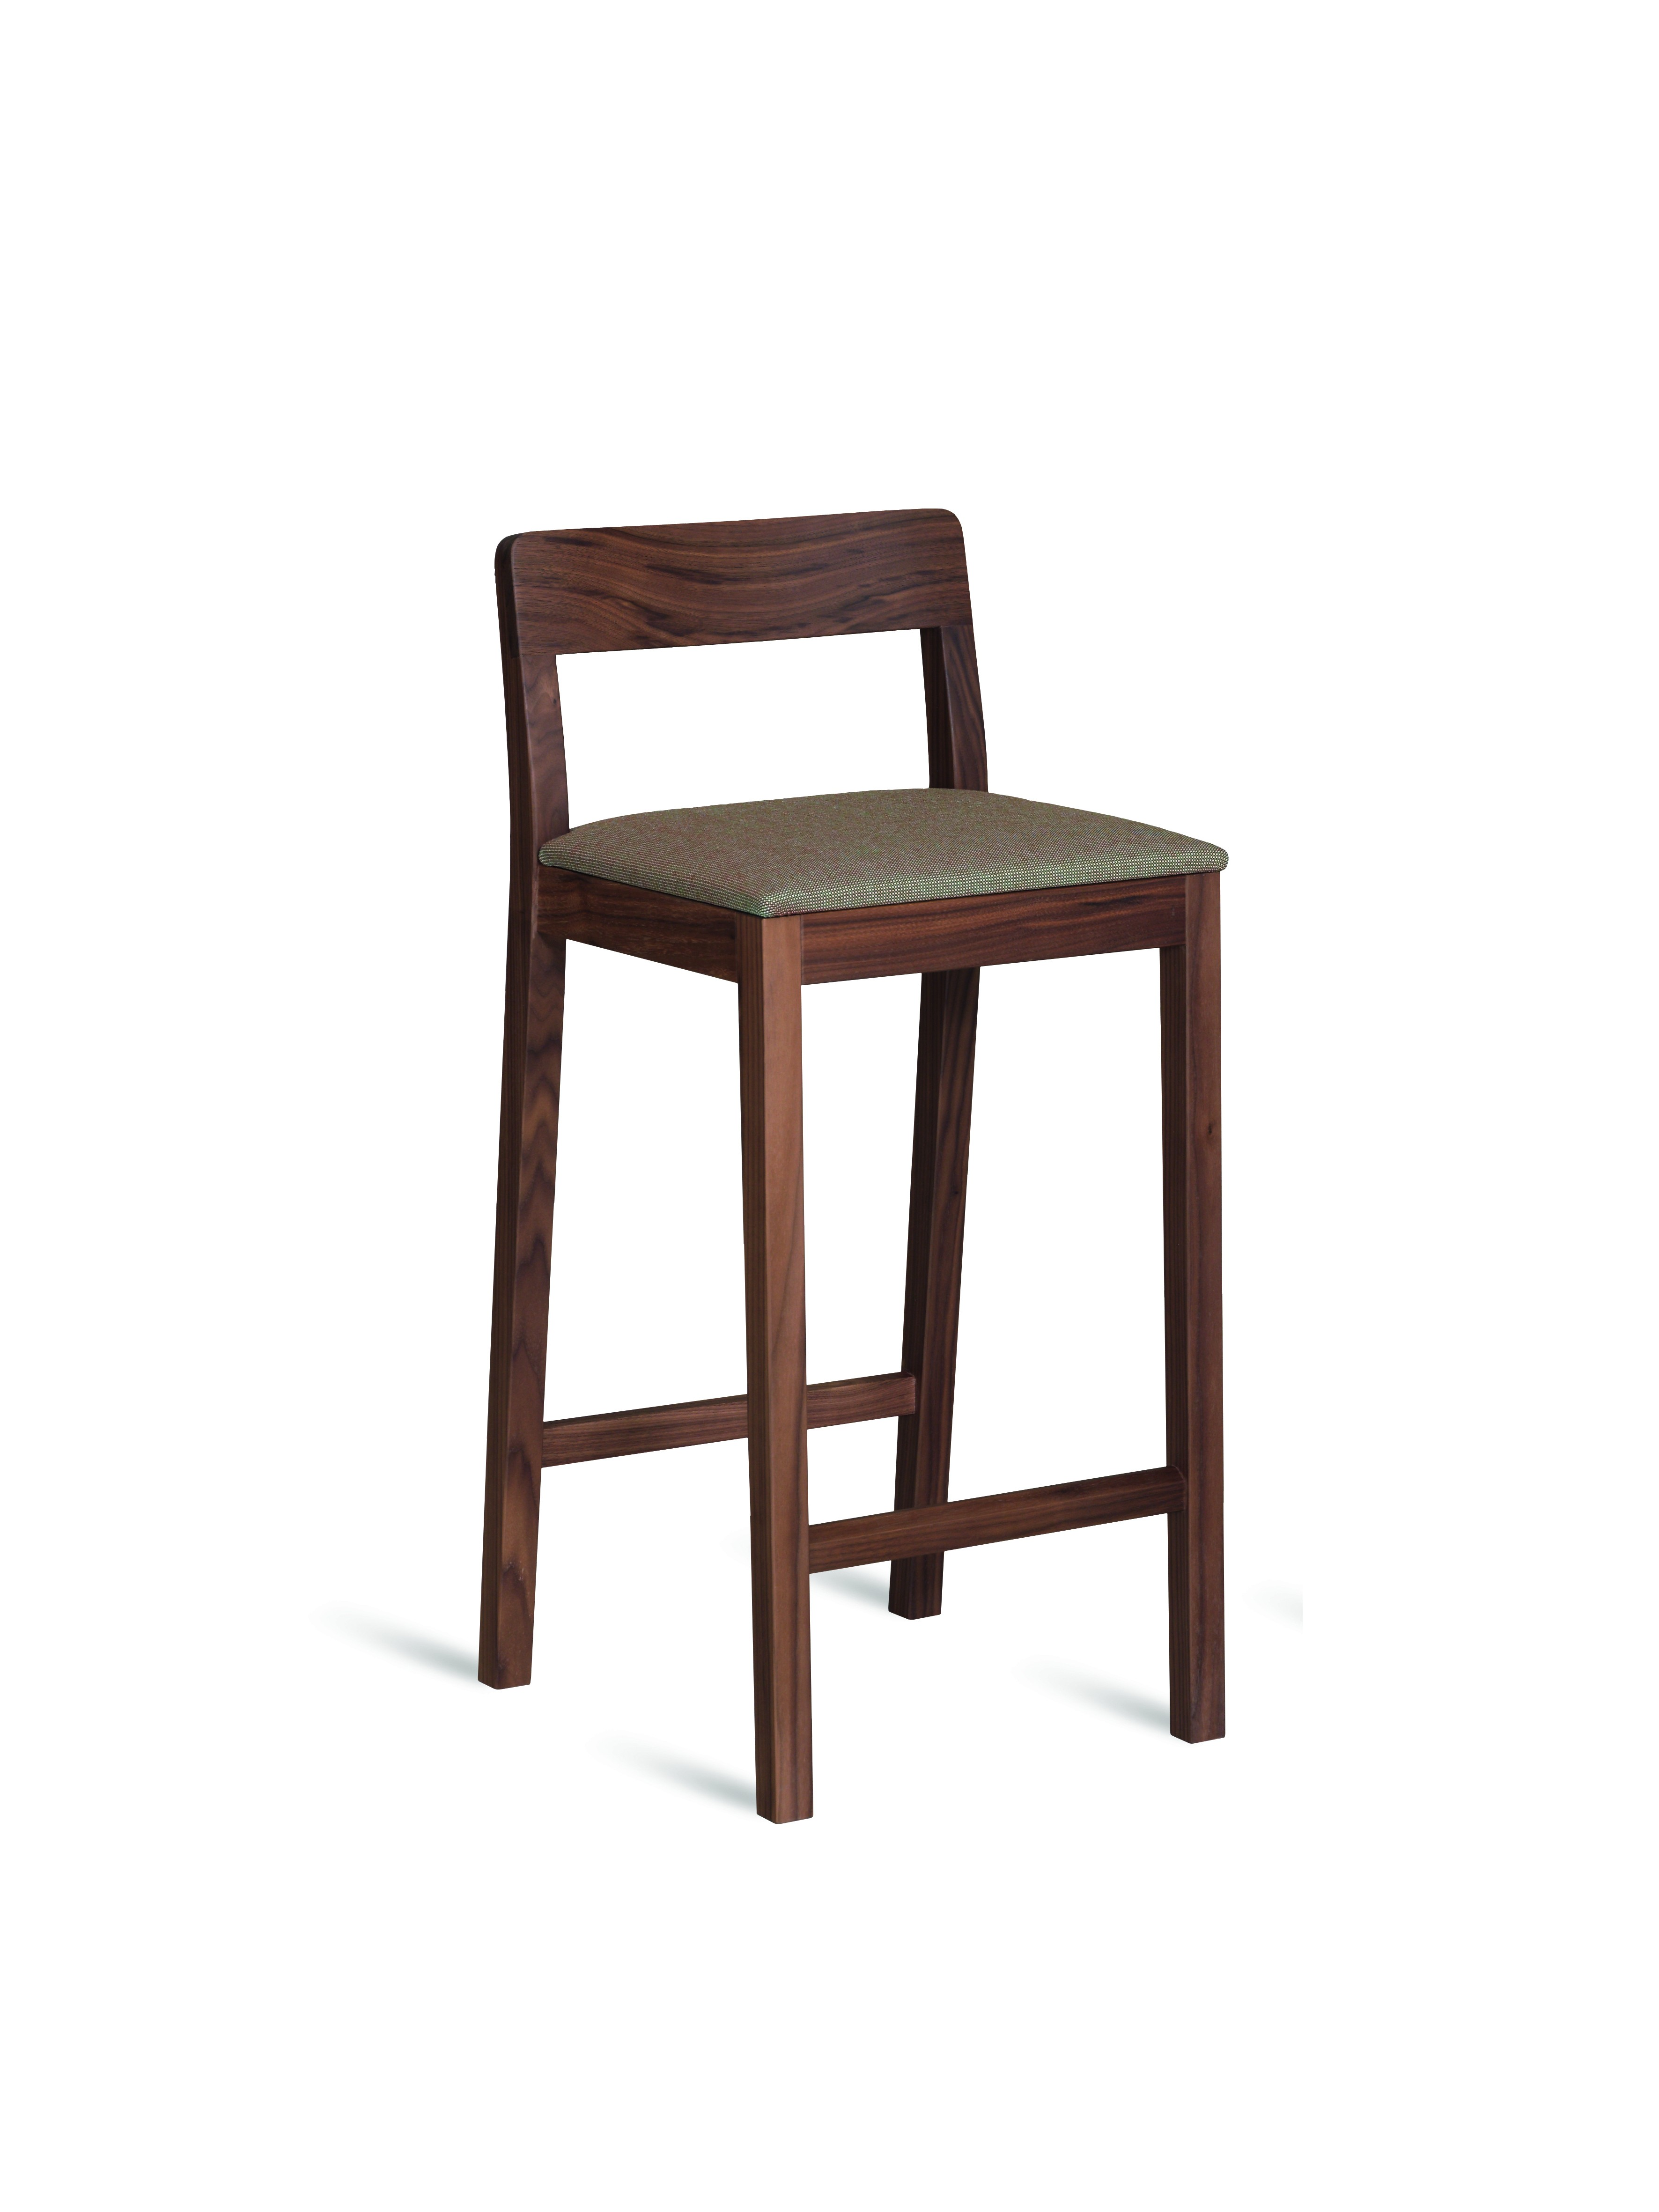 tabouret de bar sit de zeitraum couleur noyer hauteur 65 cm. Black Bedroom Furniture Sets. Home Design Ideas